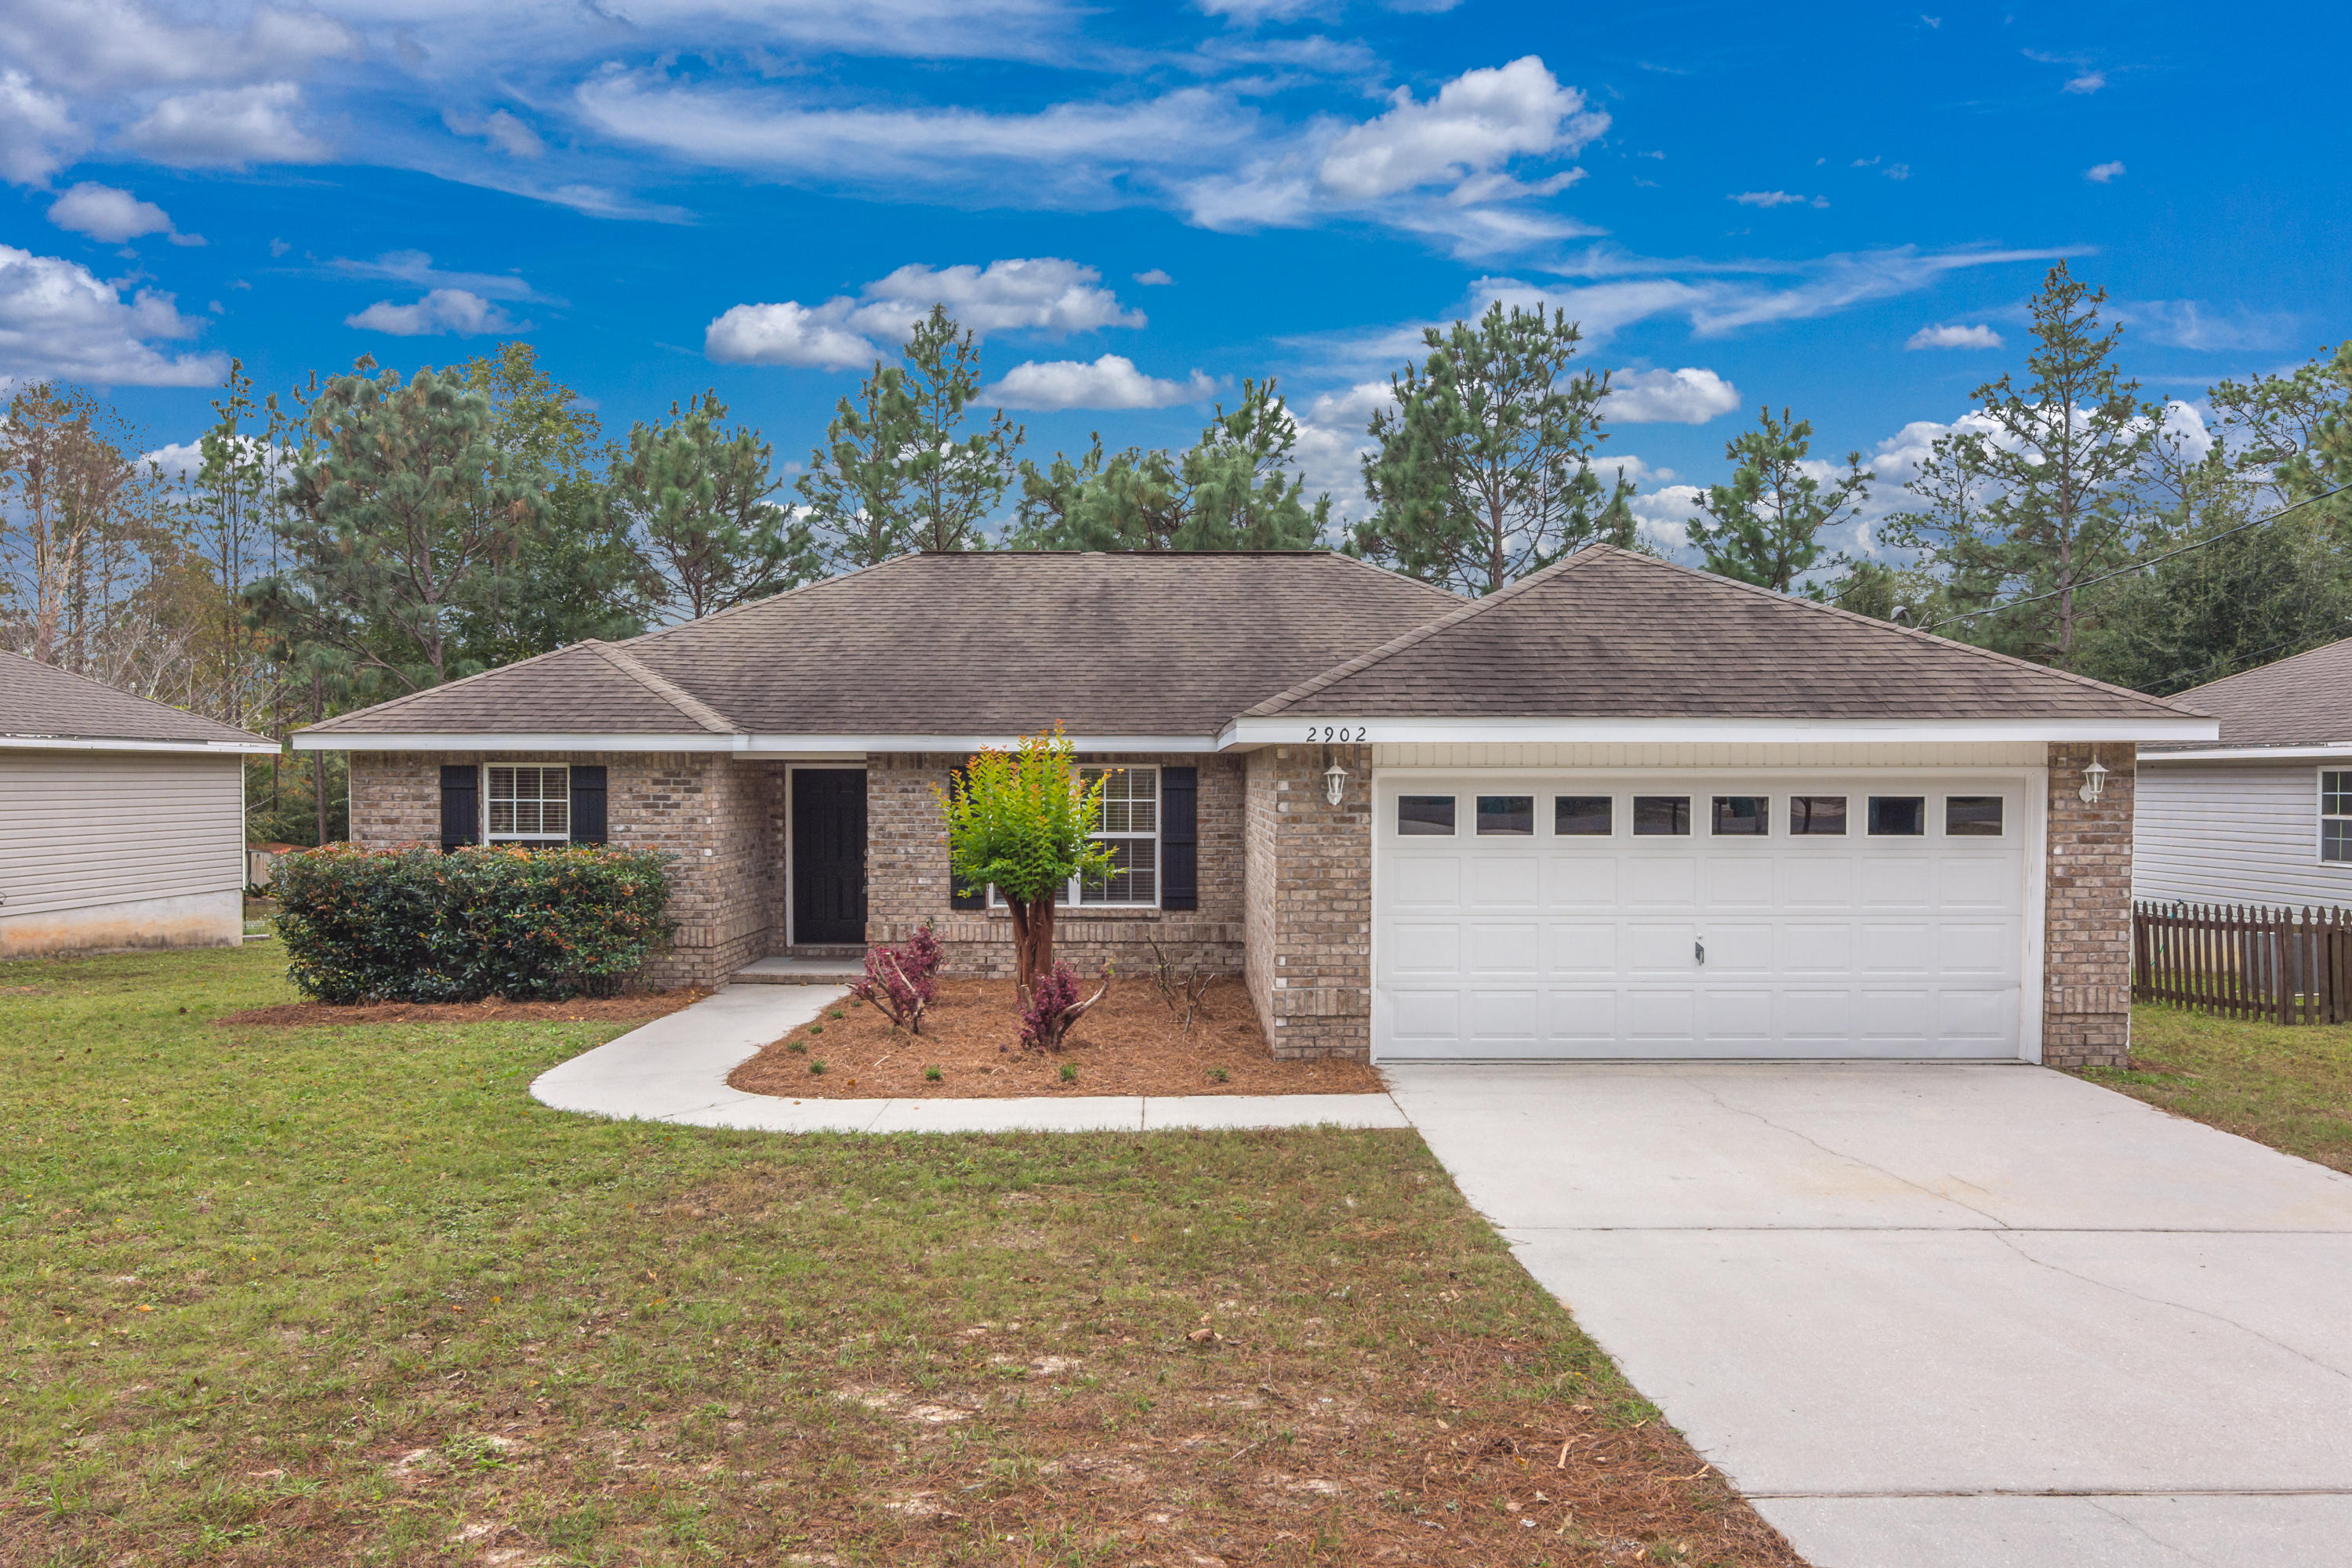 Photo of home for sale at 2902 Azalea, Crestview FL